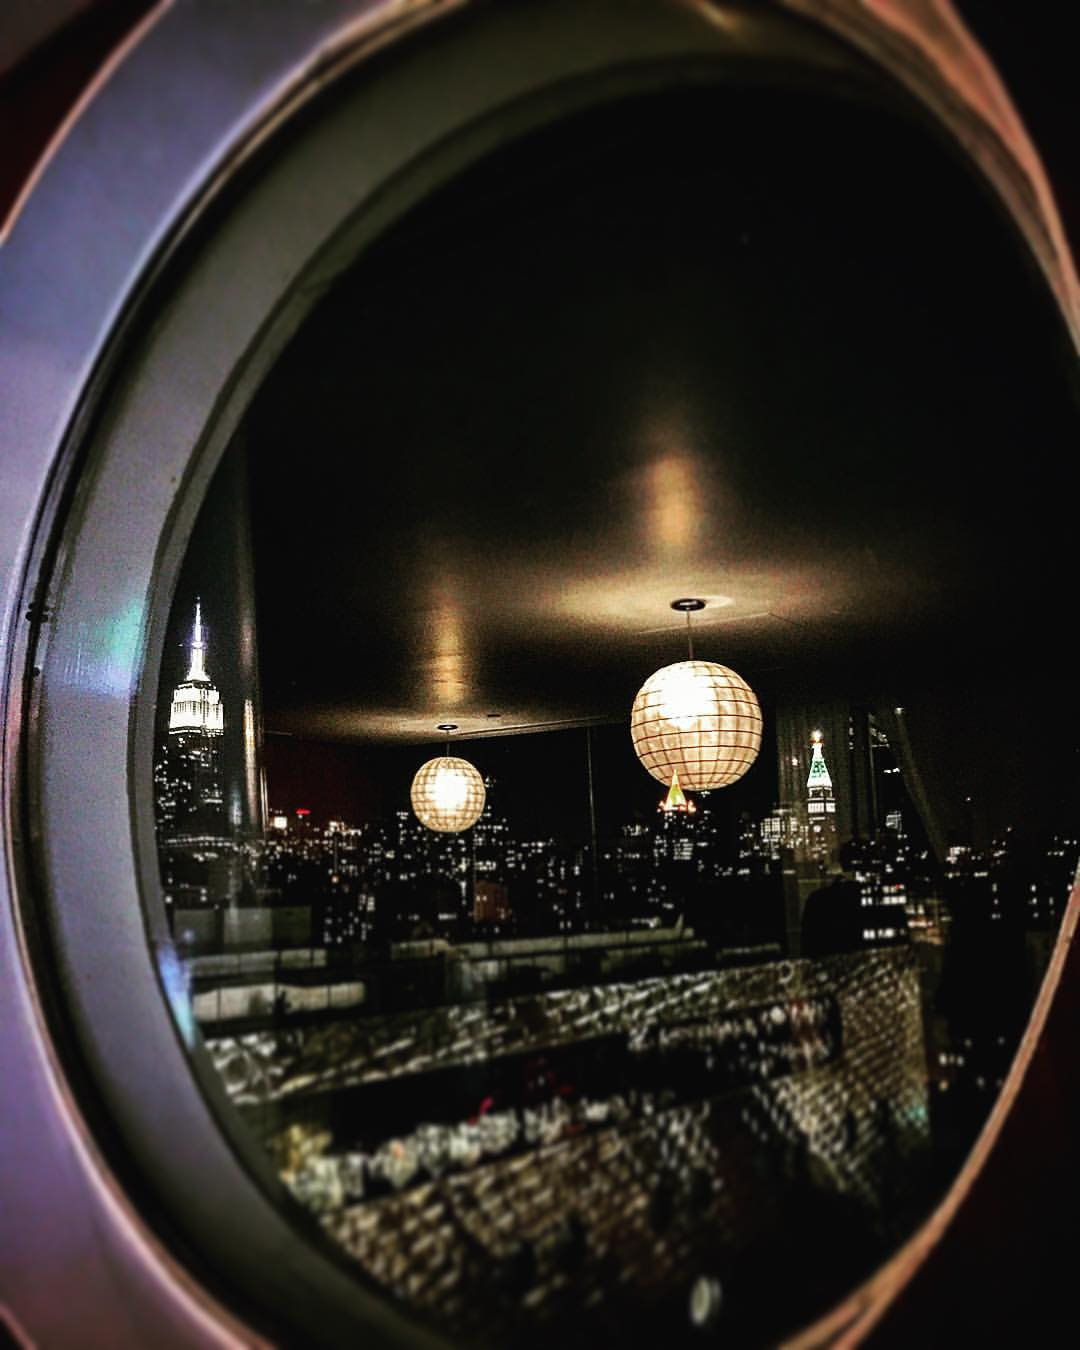 Disco balls rule this city  🌐🌟💎💫  |  #reflections #NYC #penthouse #view #empire #chryslerbuilding #meatpacking #disco #downtown #dream #manhattan #iloveny #openhouseny  (at Dream Downtown)